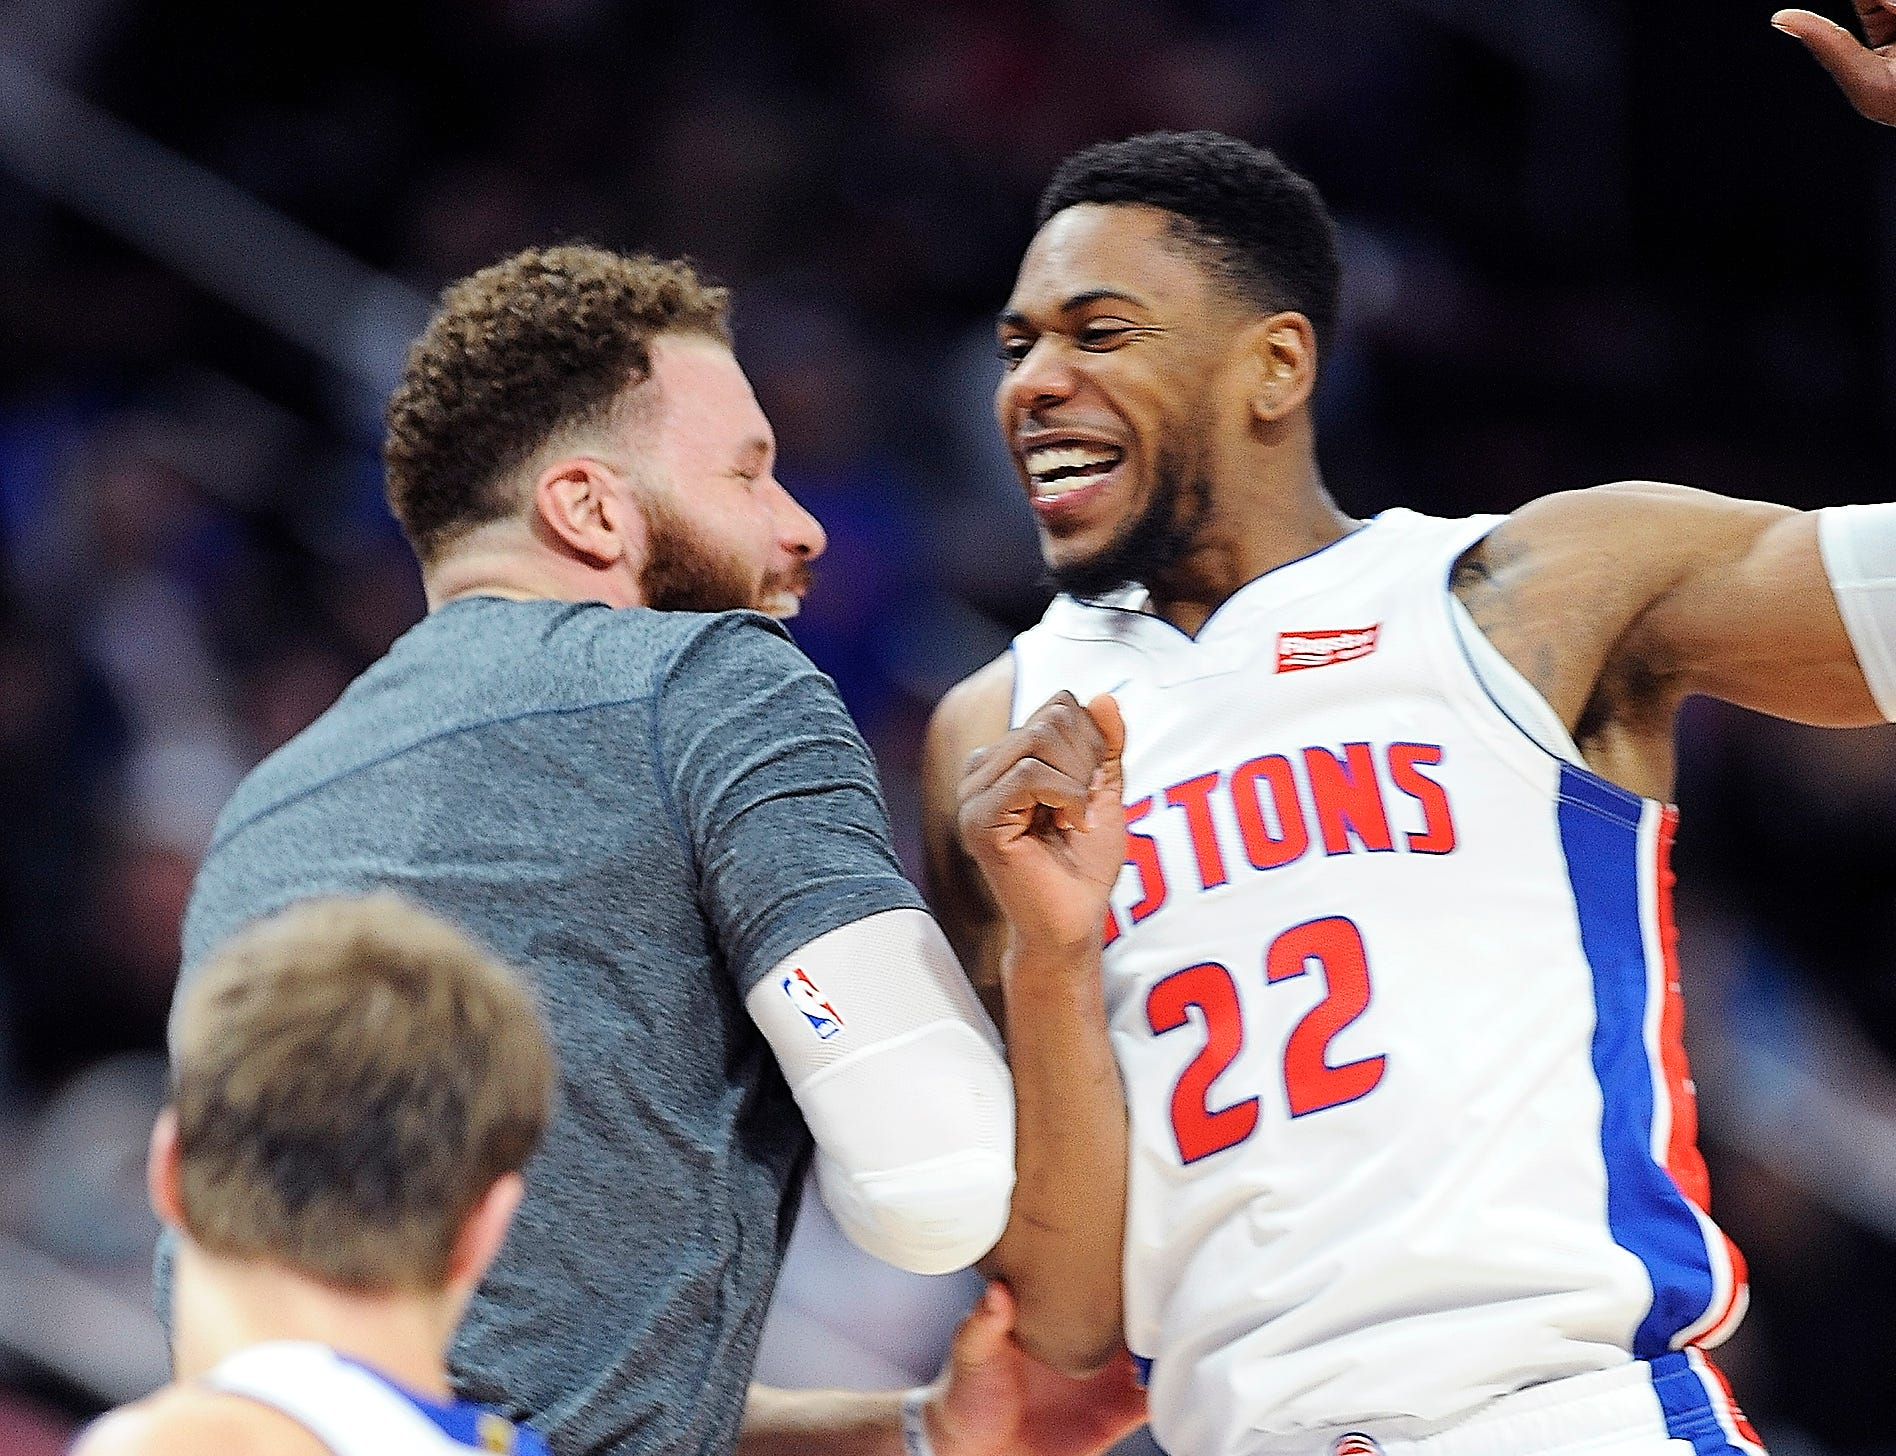 Pistons' Glenn Robinson III celebrate with Blake Griffin after a basket in the fourth quarter.